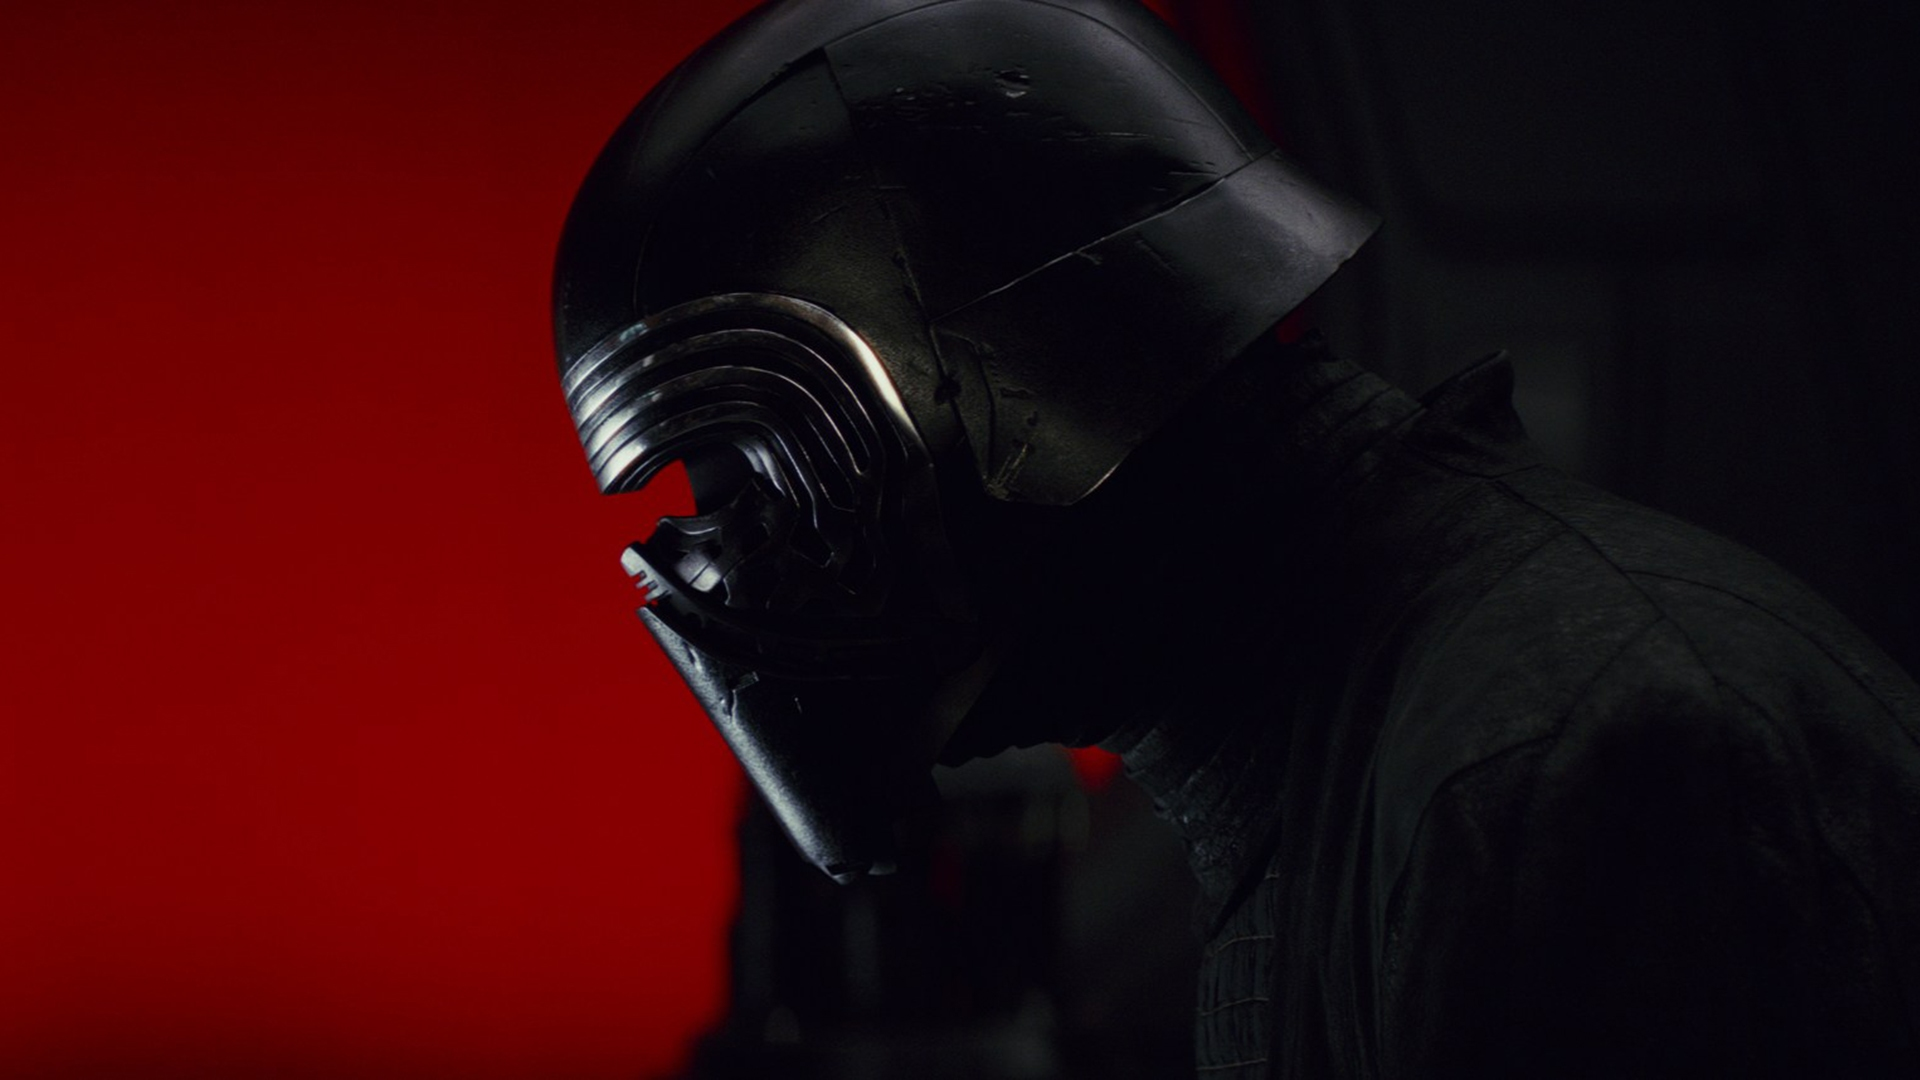 Kylo Ren Star Wars The Last Jedi 2017 Hd Movies 4k Wallpapers